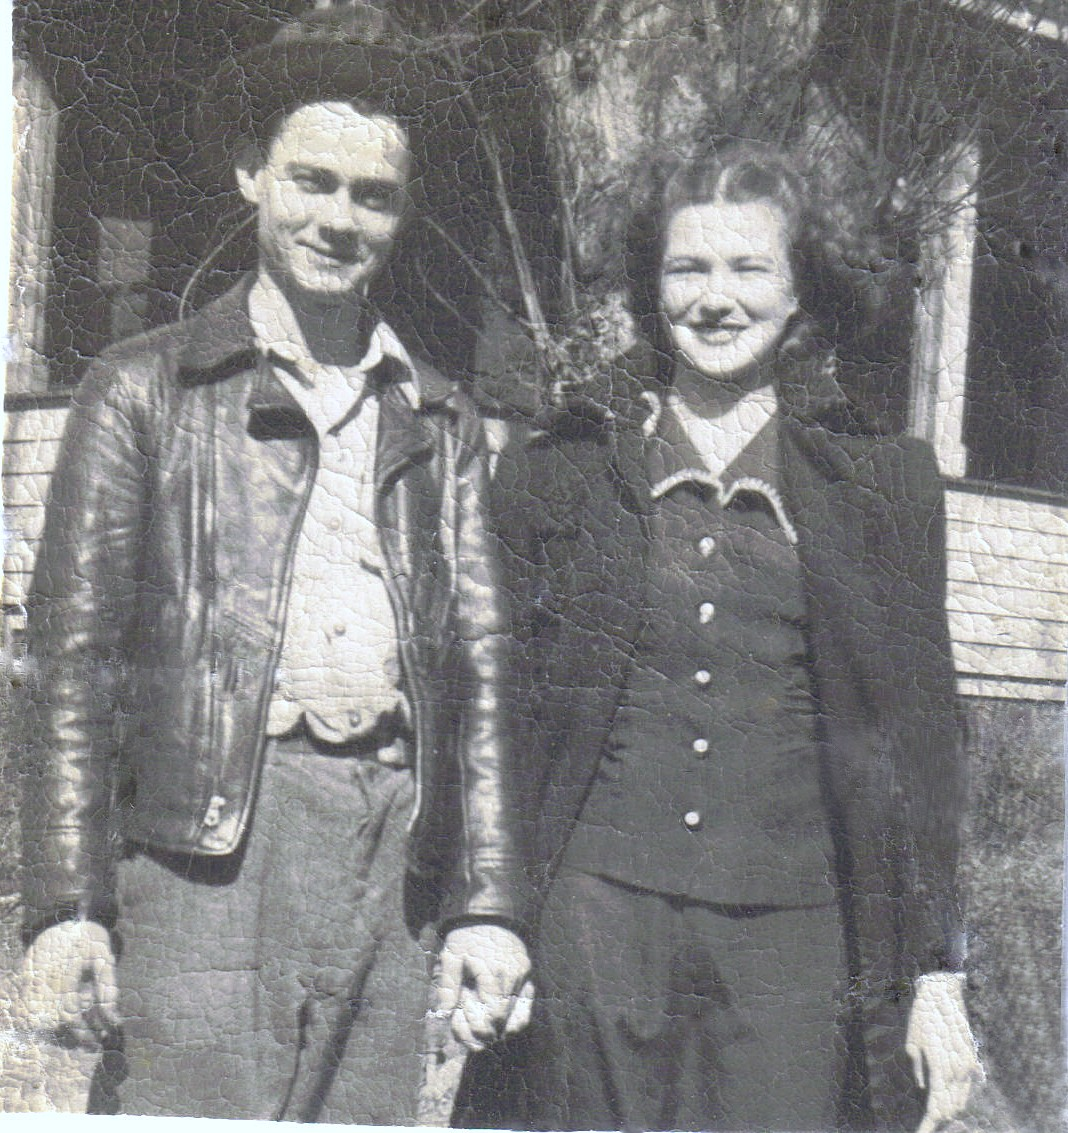 Dad & Mom - April 1947